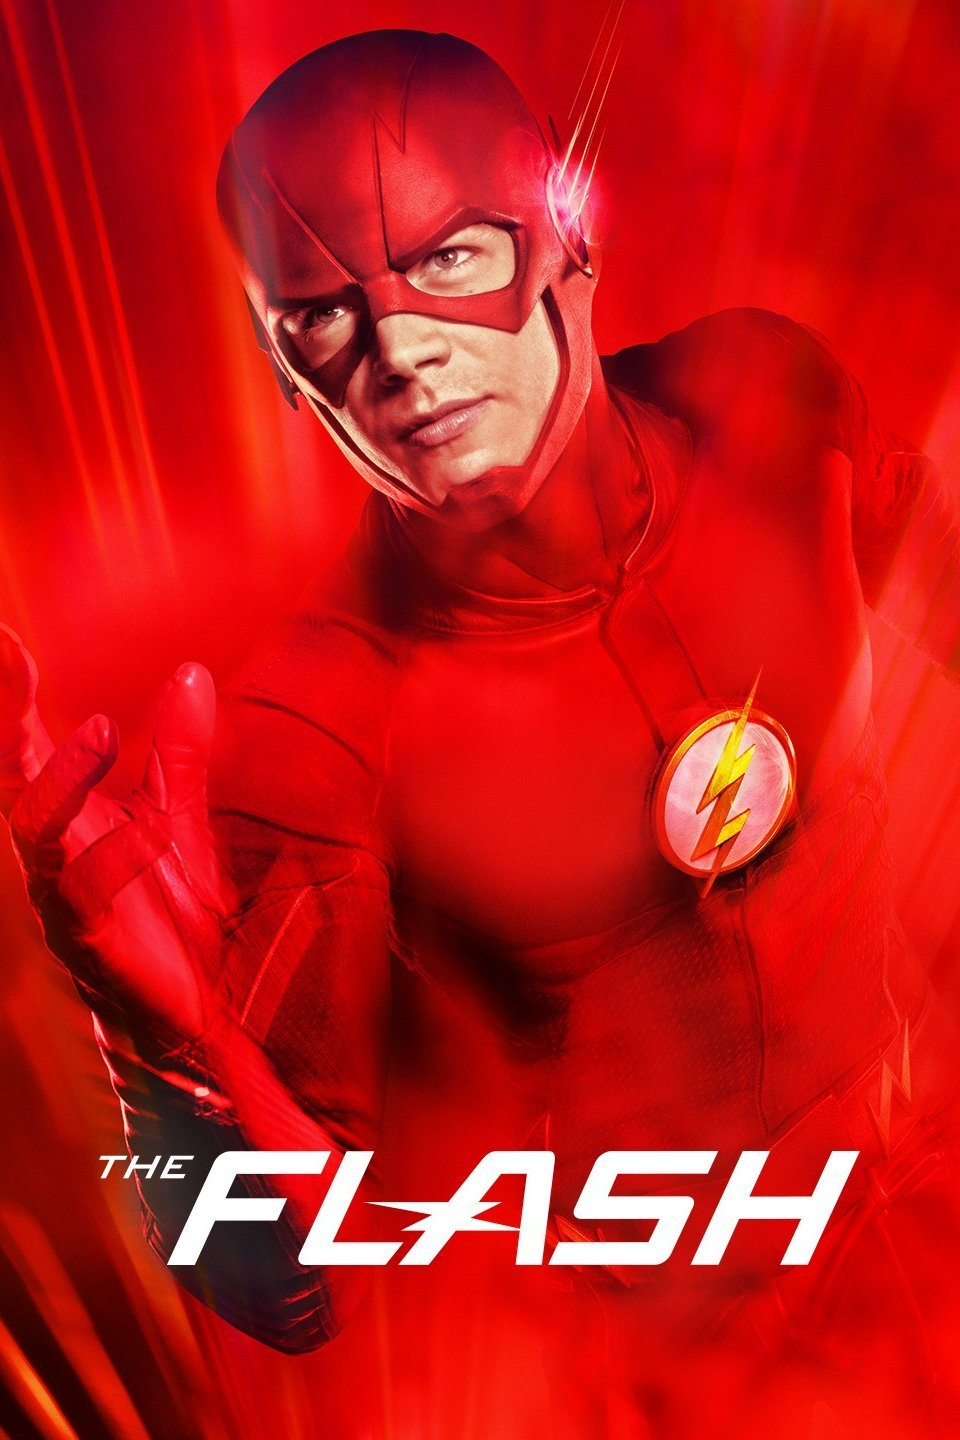 The Flash Season 3 Download WEB-DL Episode 7